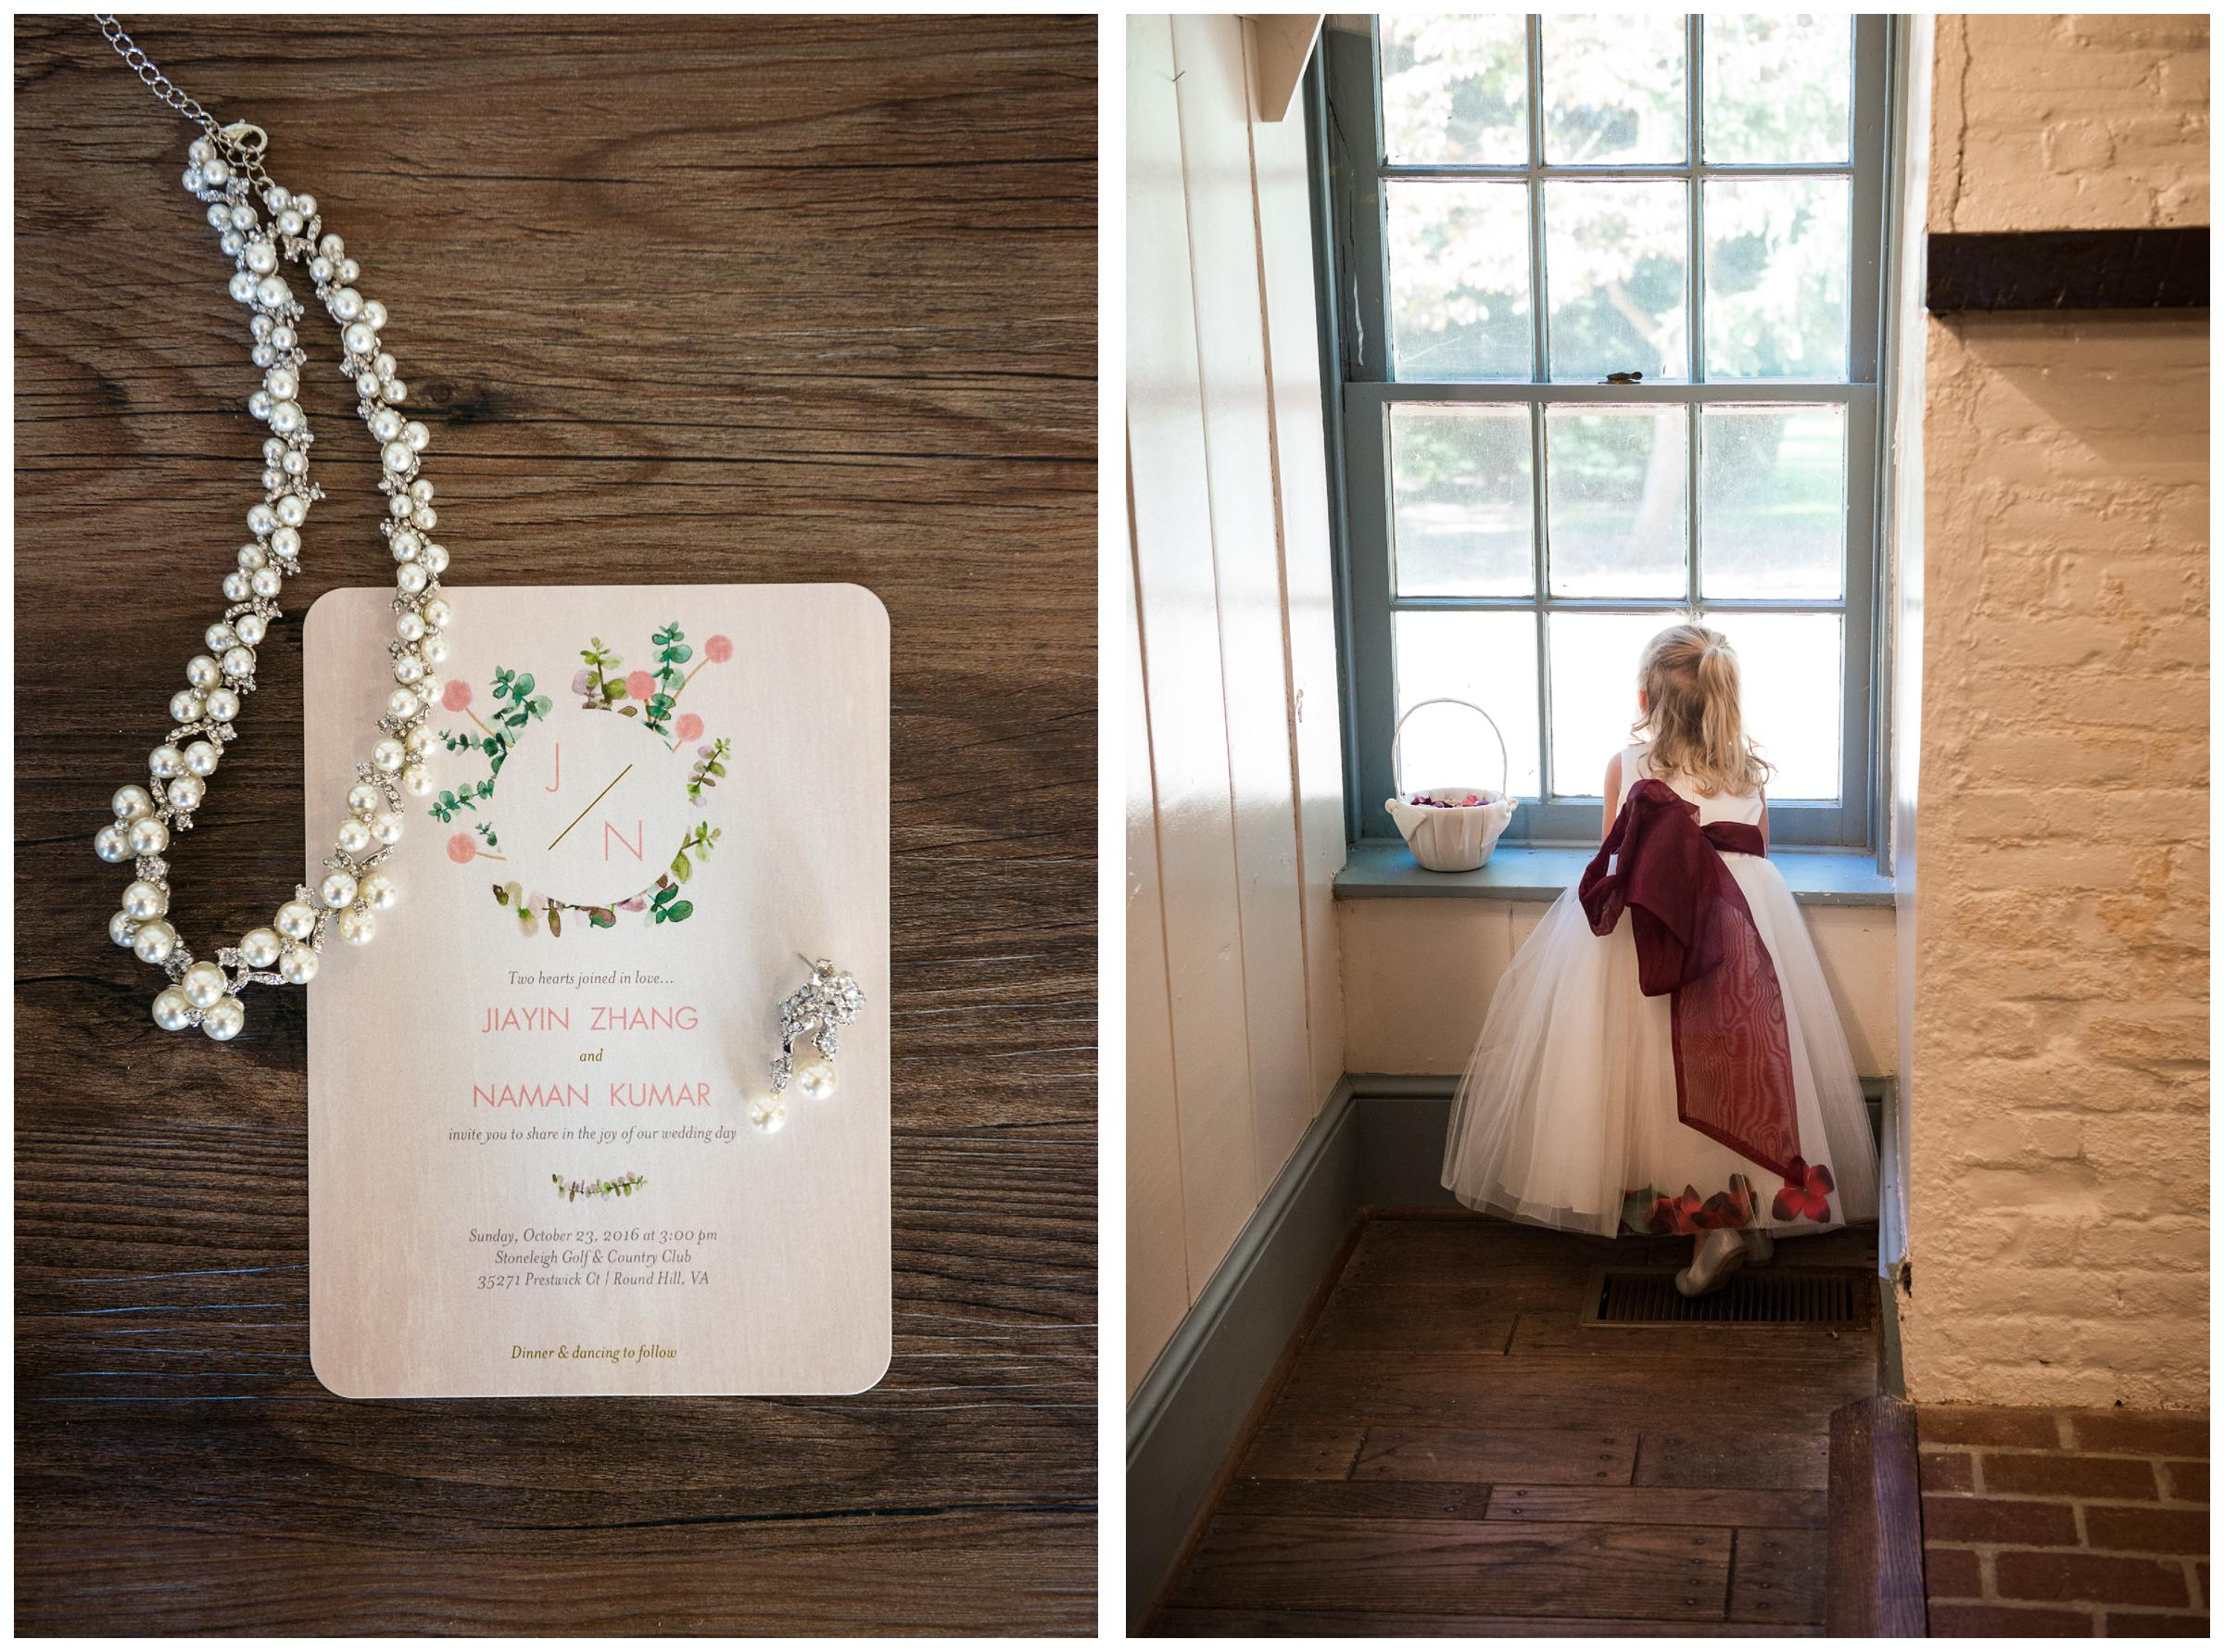 wedding jewelry and invitation, and flower girl